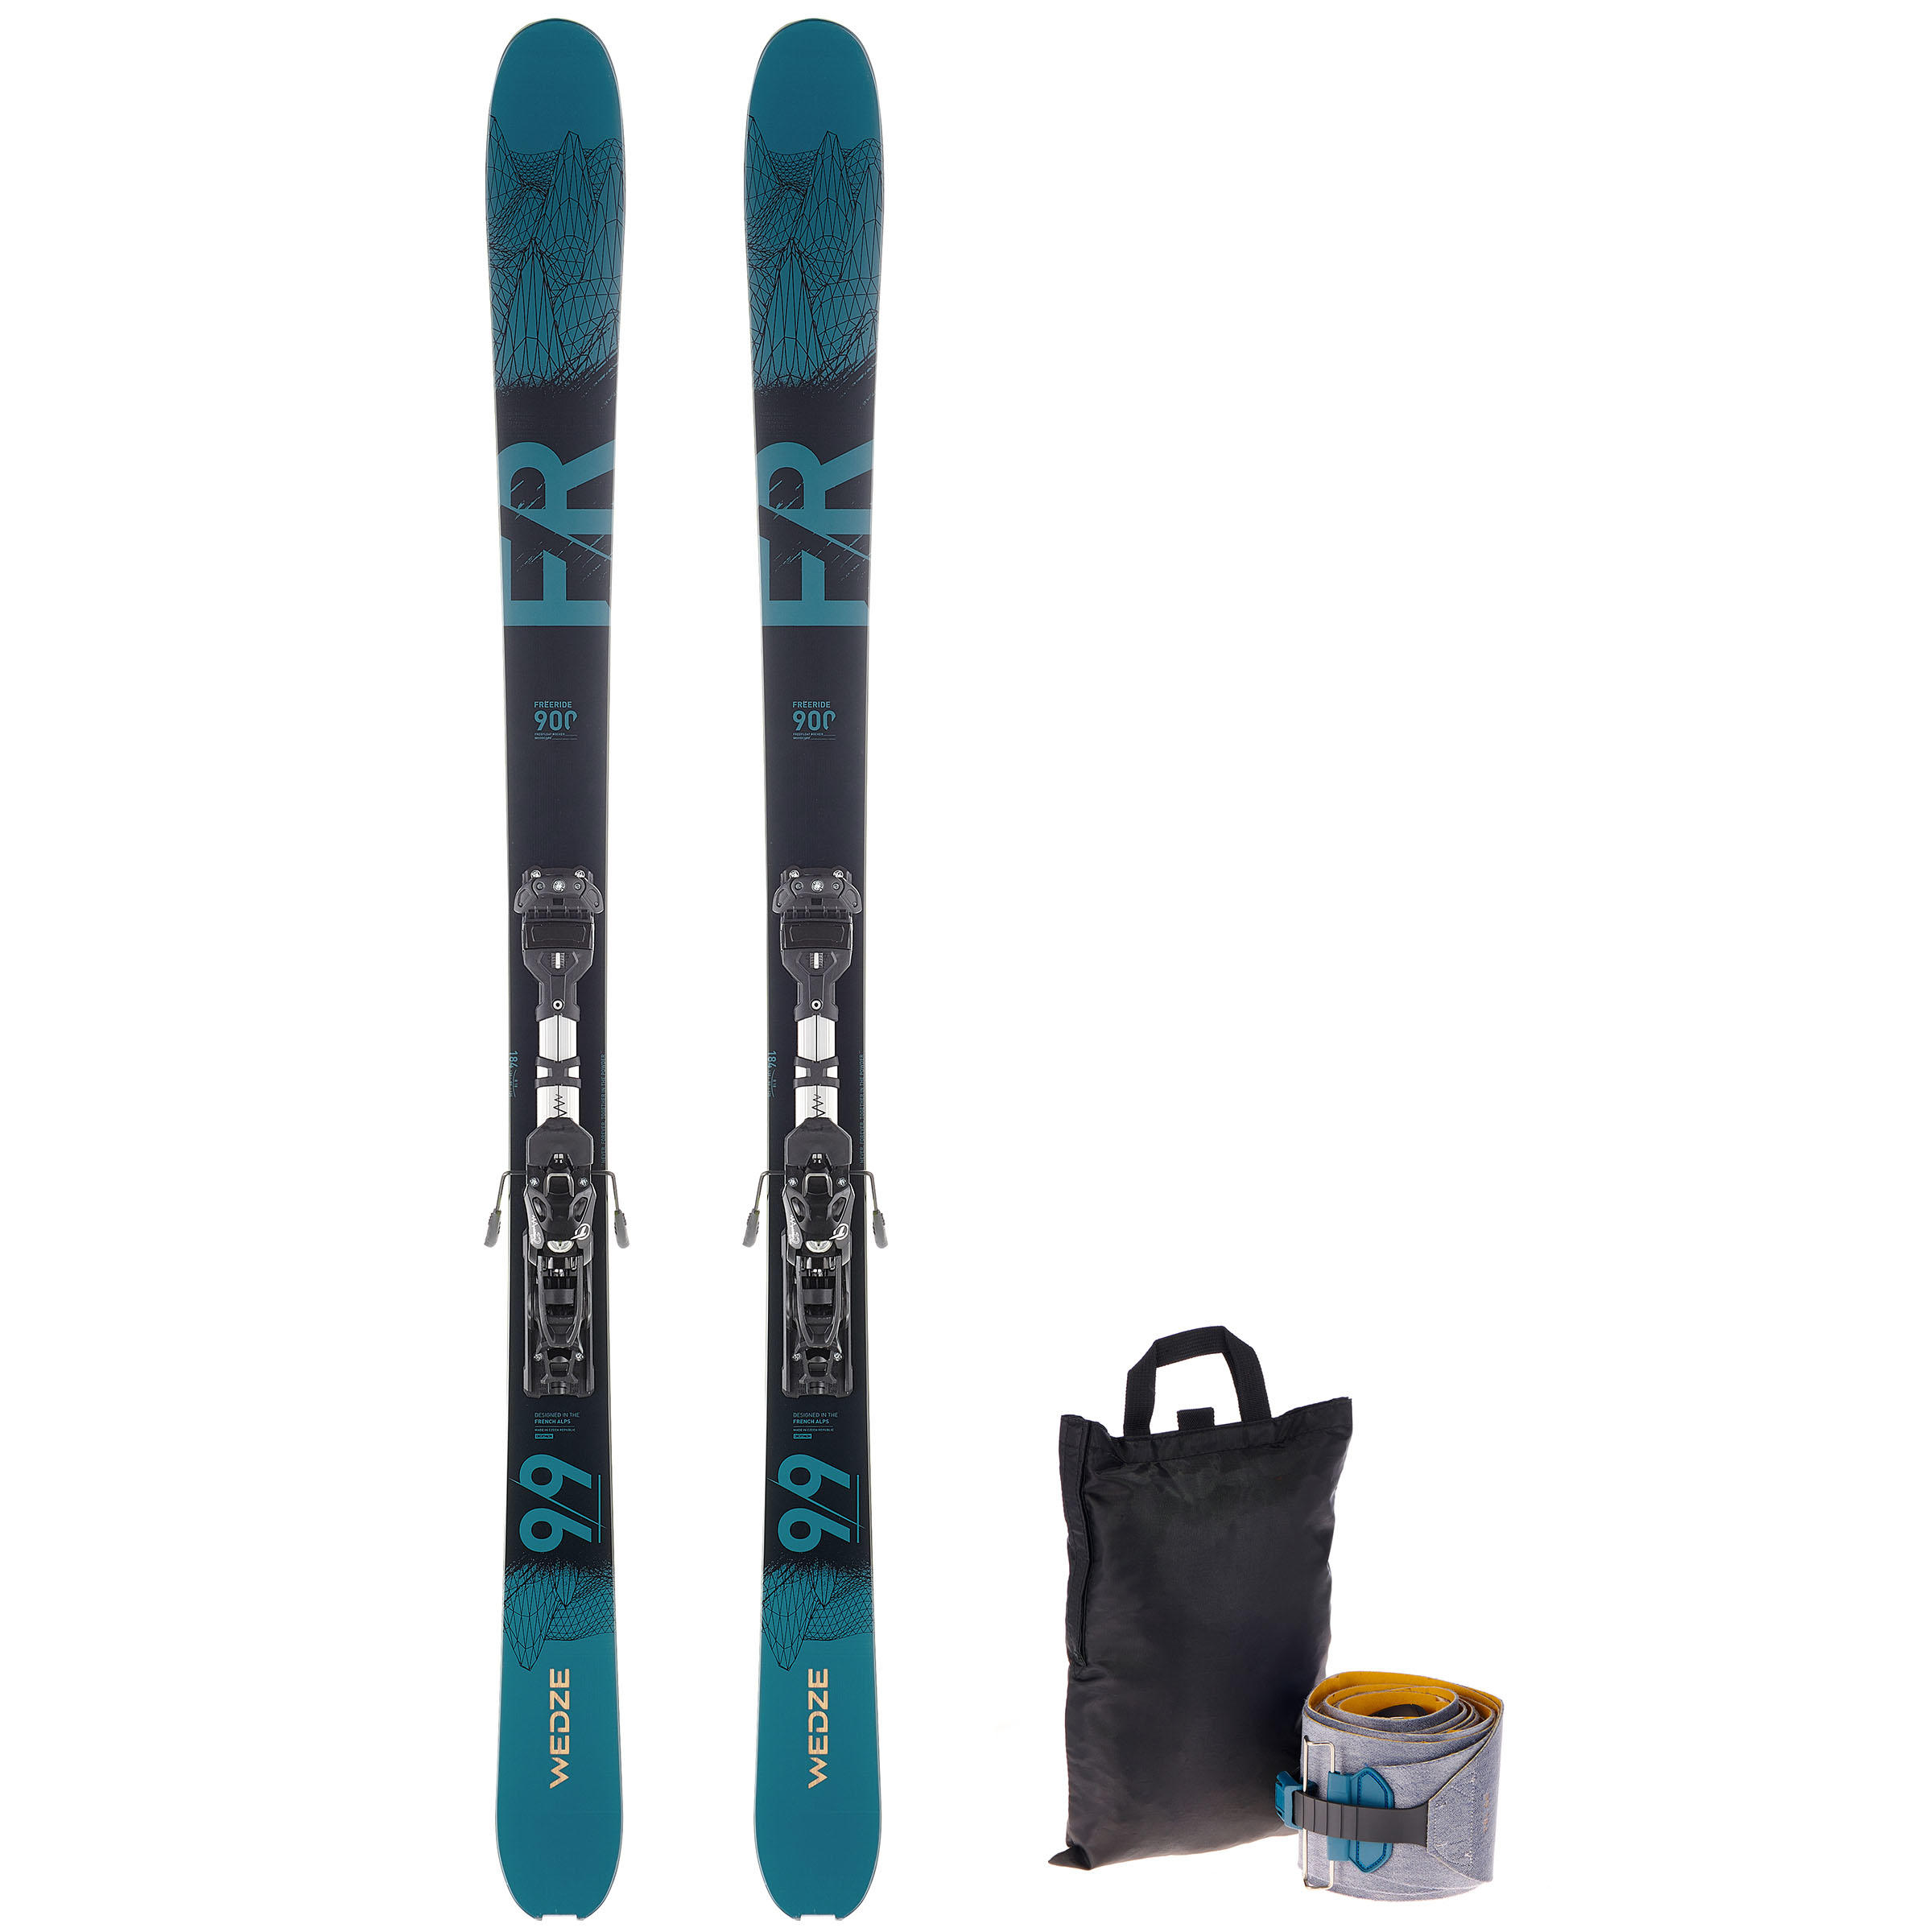 FR 900 Freeride Touring Skis - Petrol Black